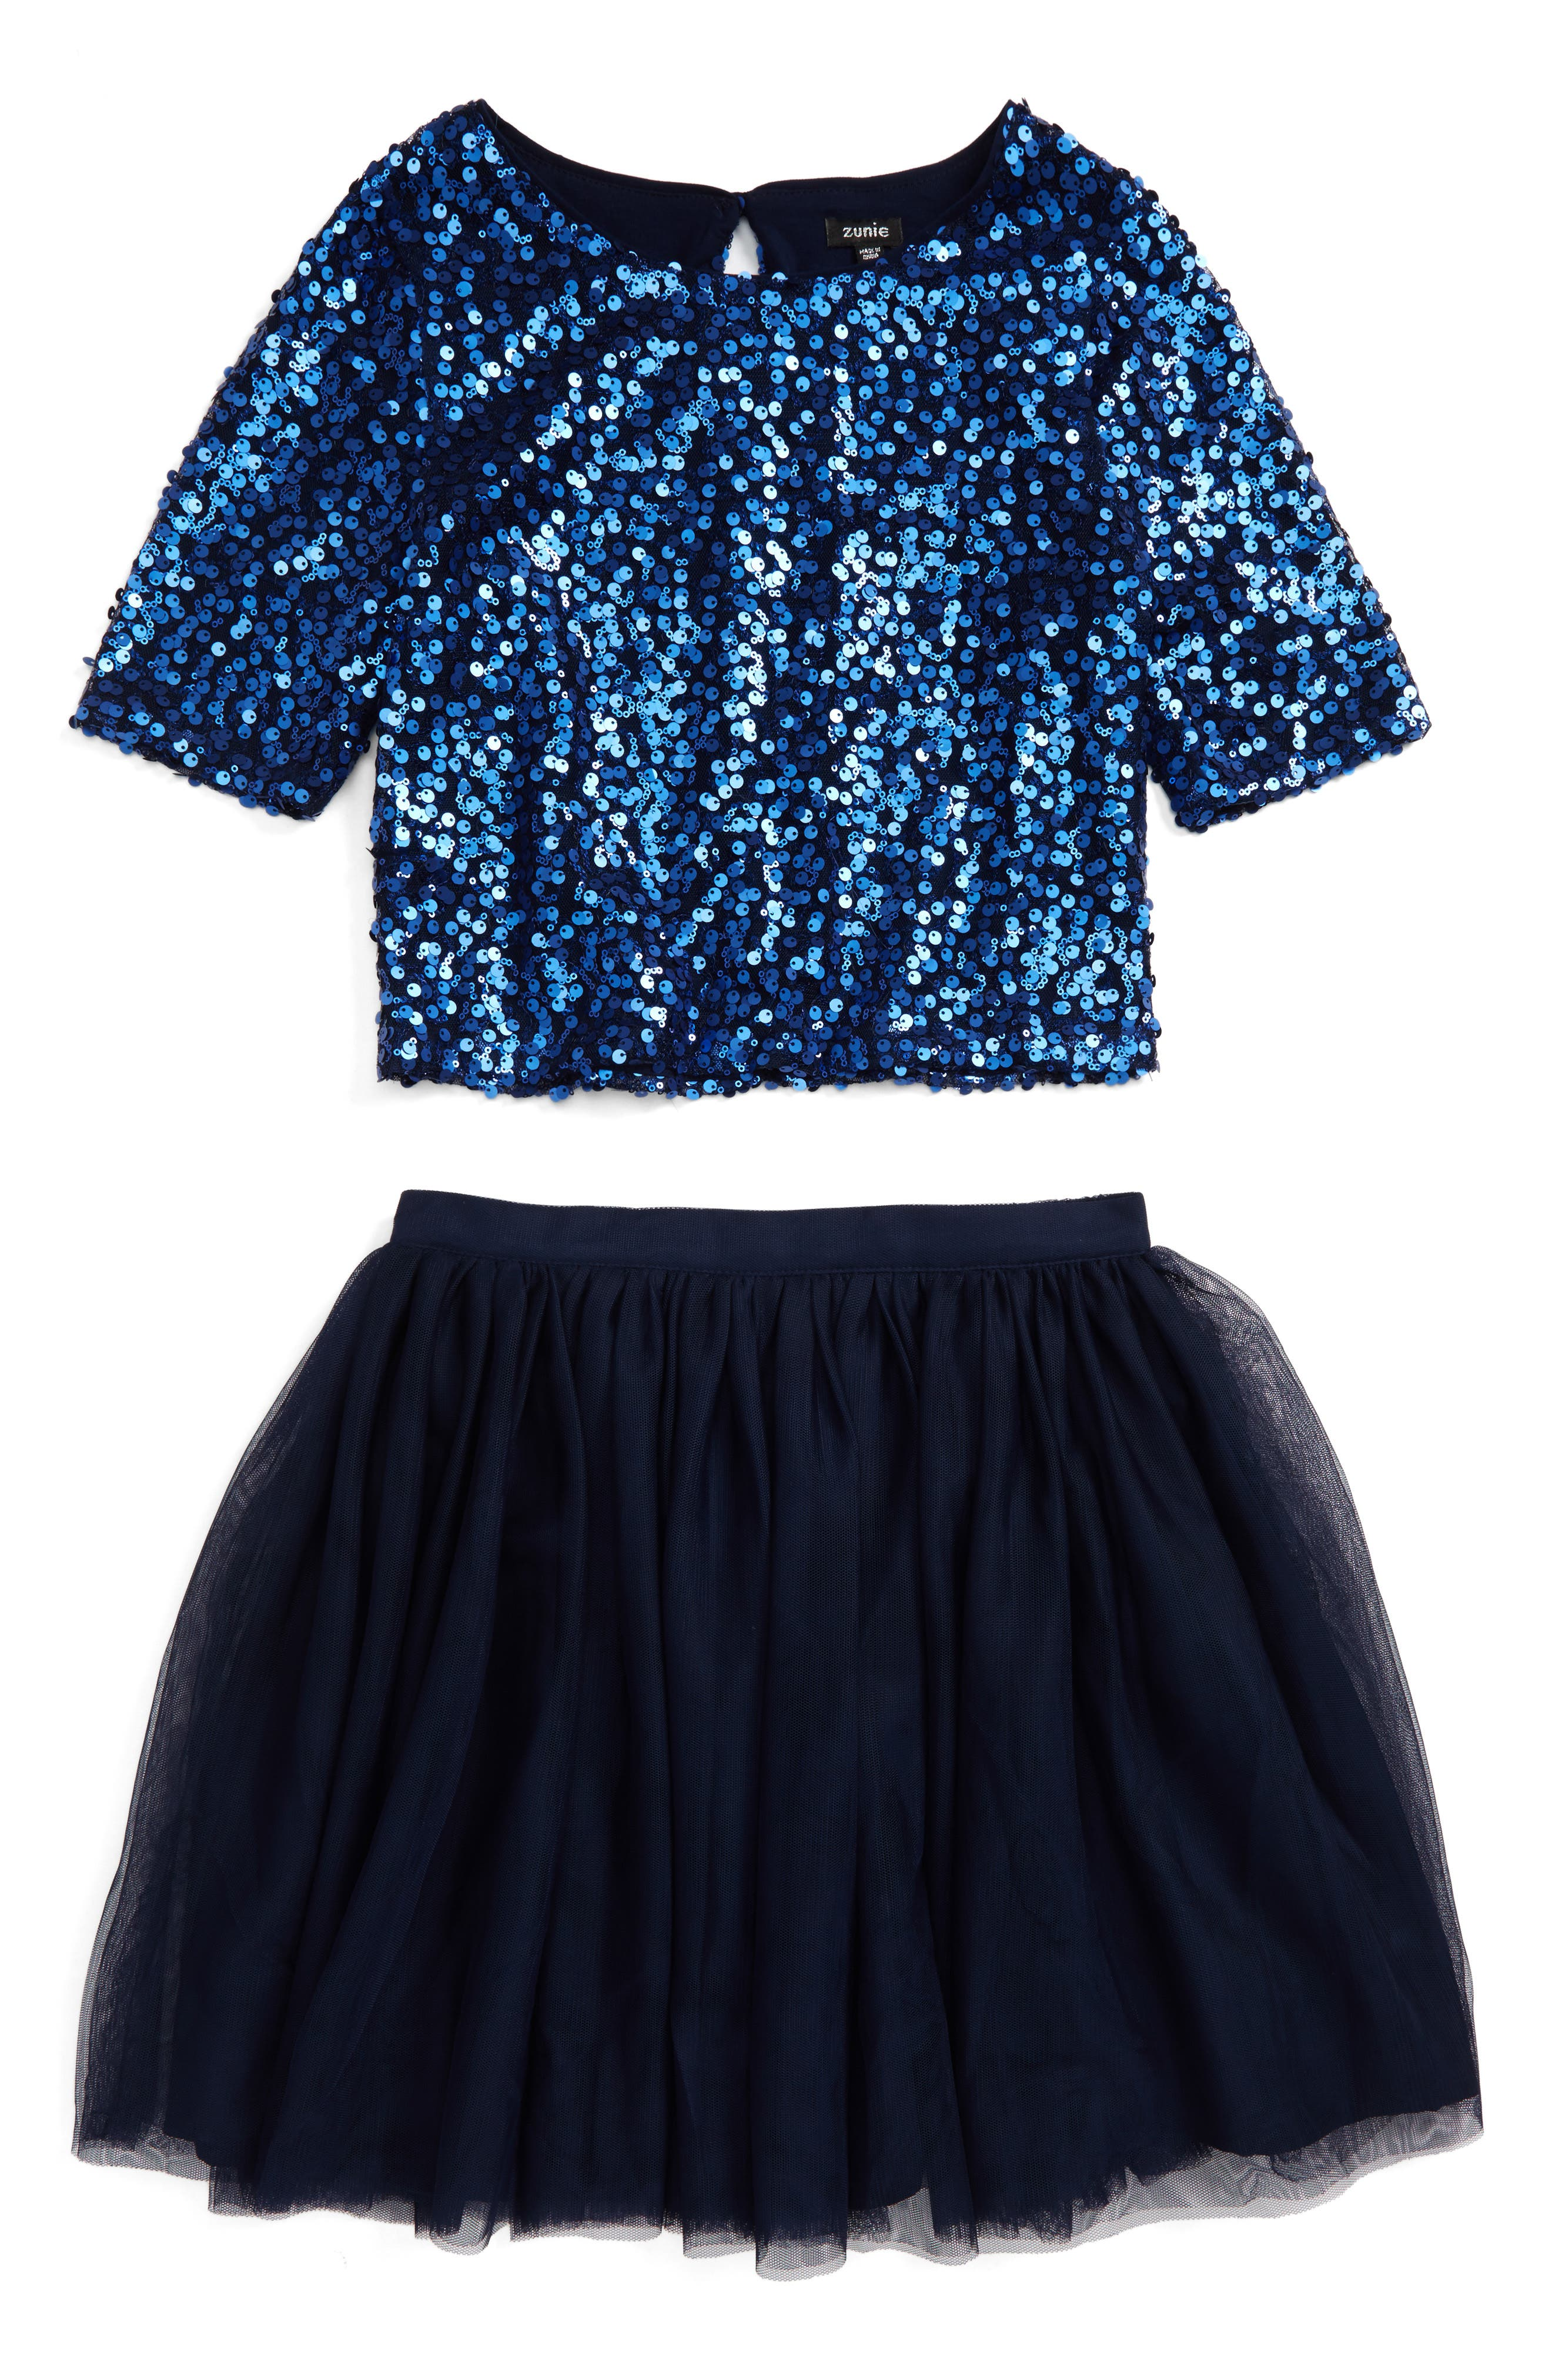 Sequin Top & Tulle Skirt Set,                             Main thumbnail 1, color,                             Navy